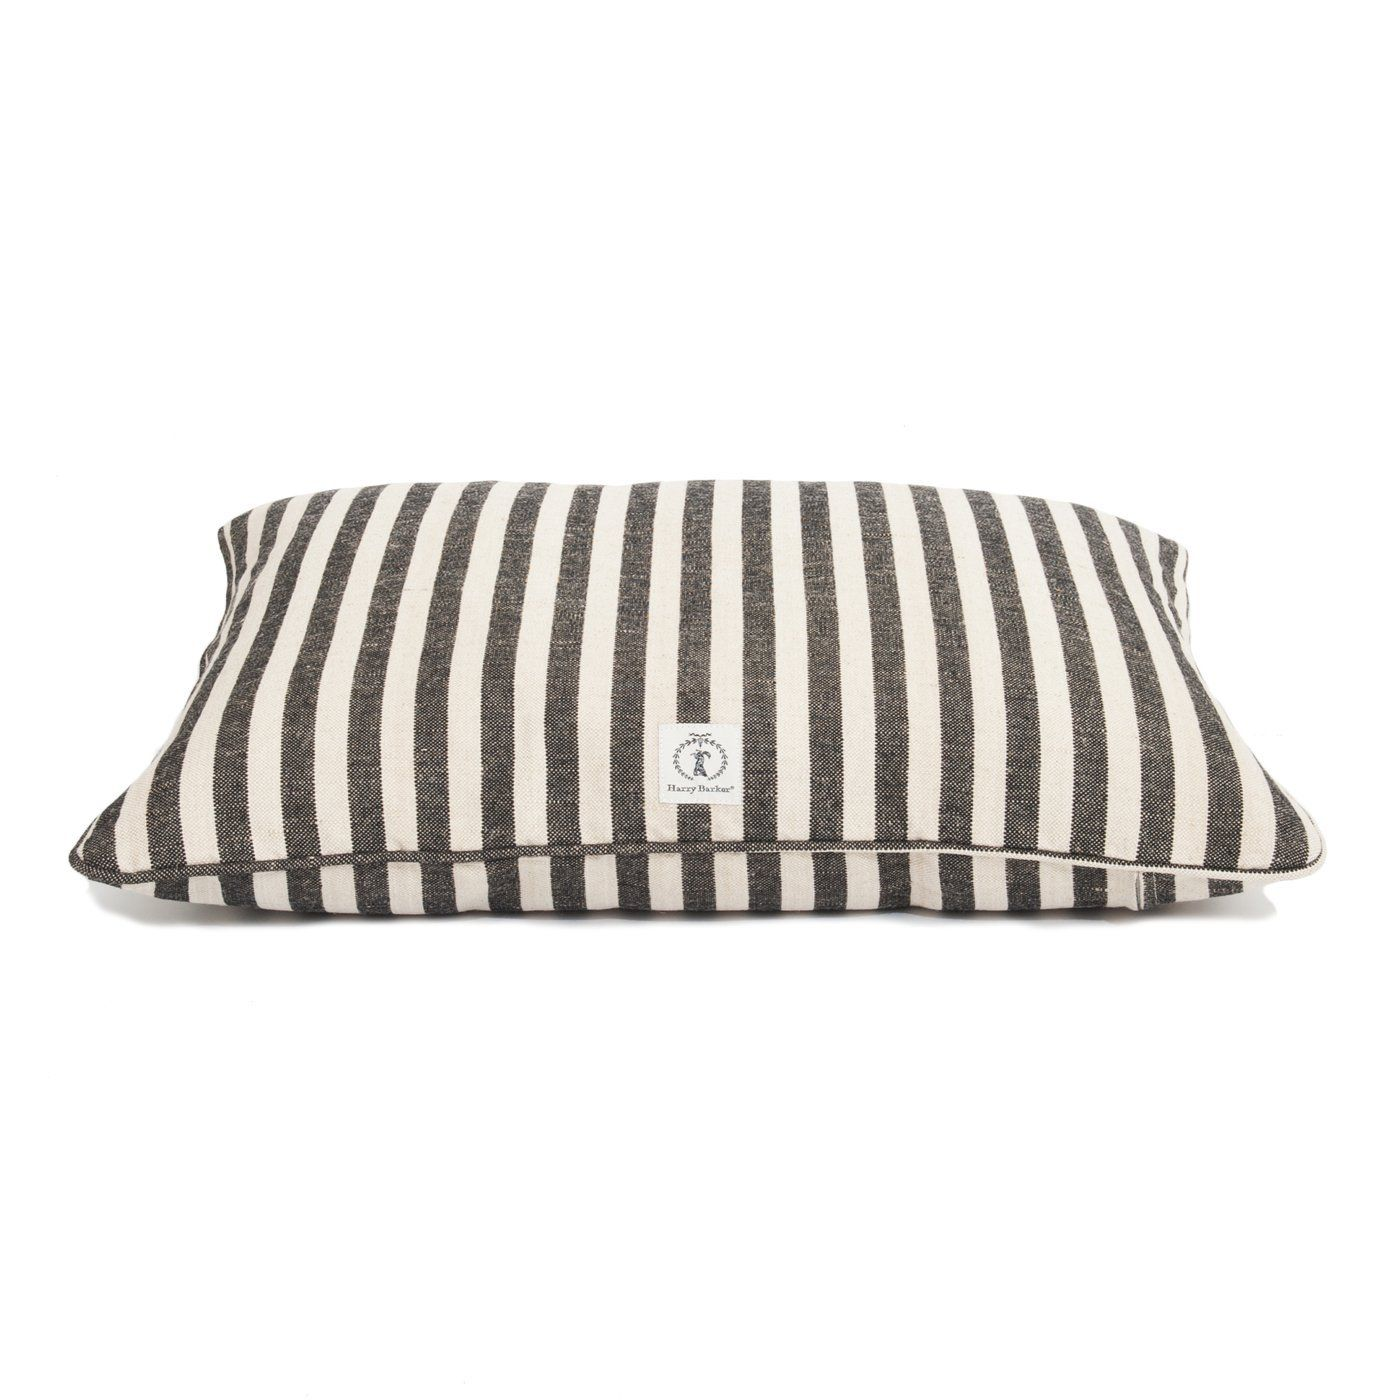 Harry Barker Large Vintage Stripe Dog Bed in Black Dog